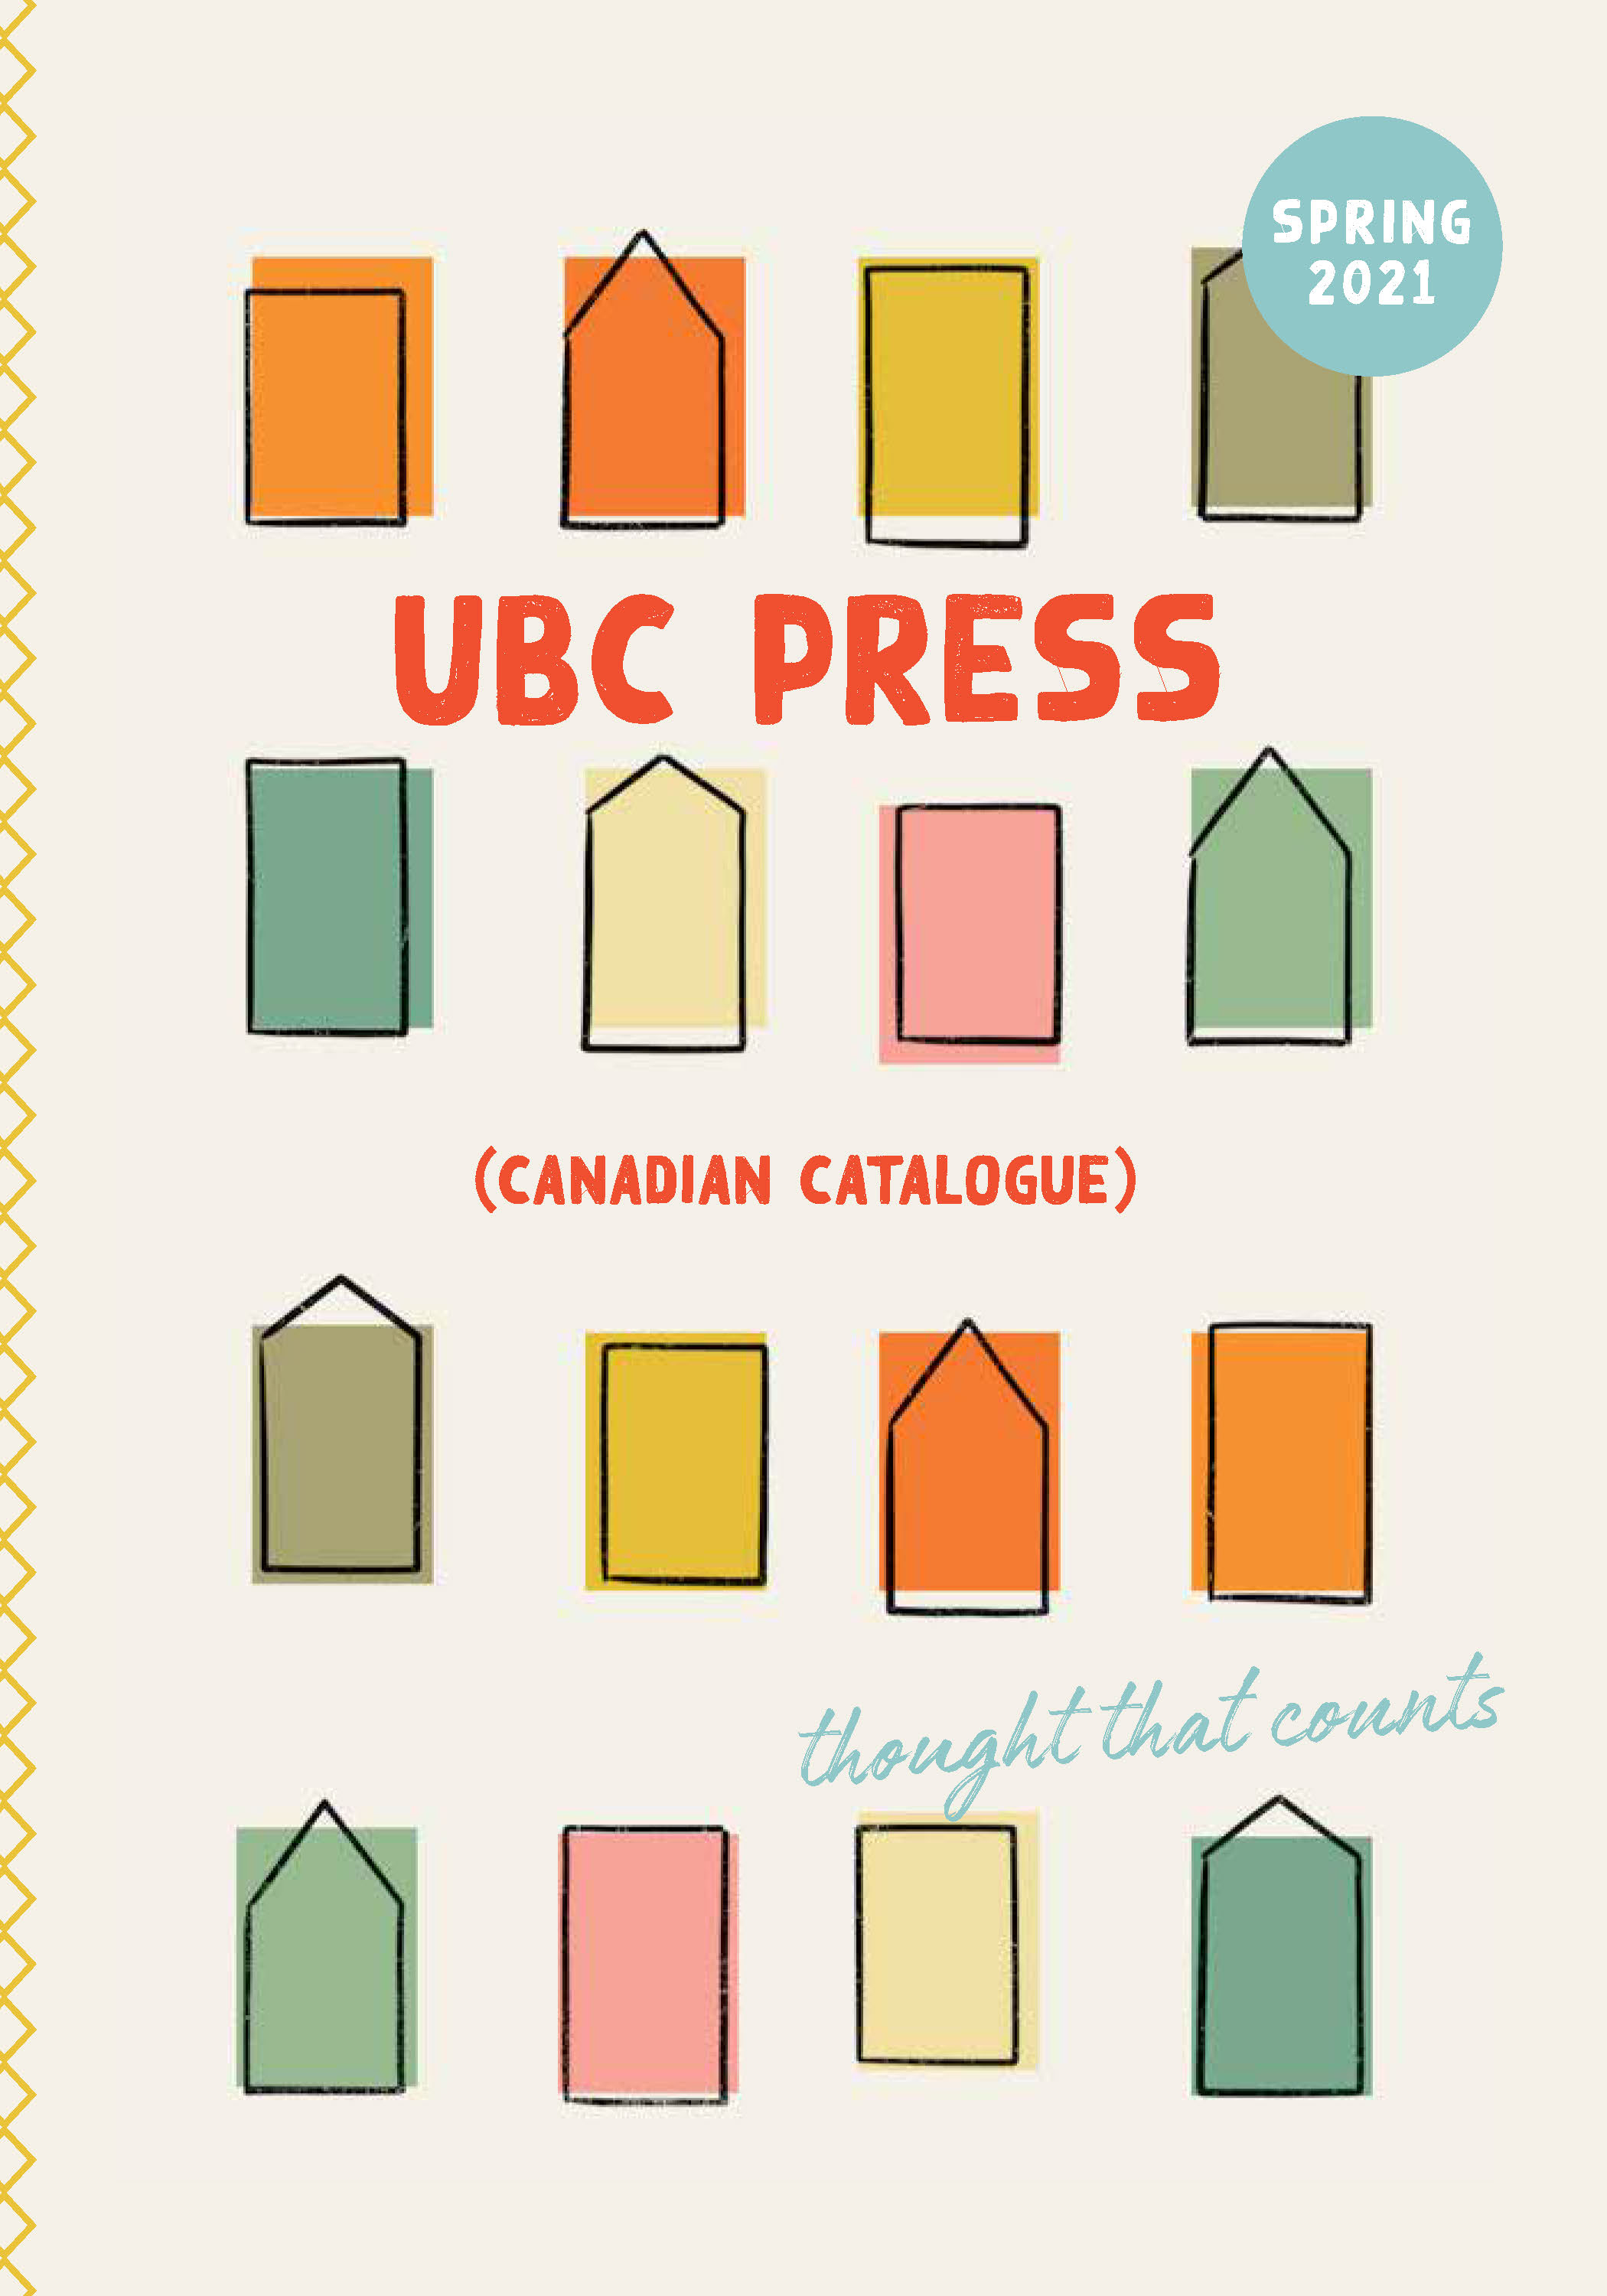 Spring 2021 catalogue cover featuring a beige background and drawings of houses in a variety of colours